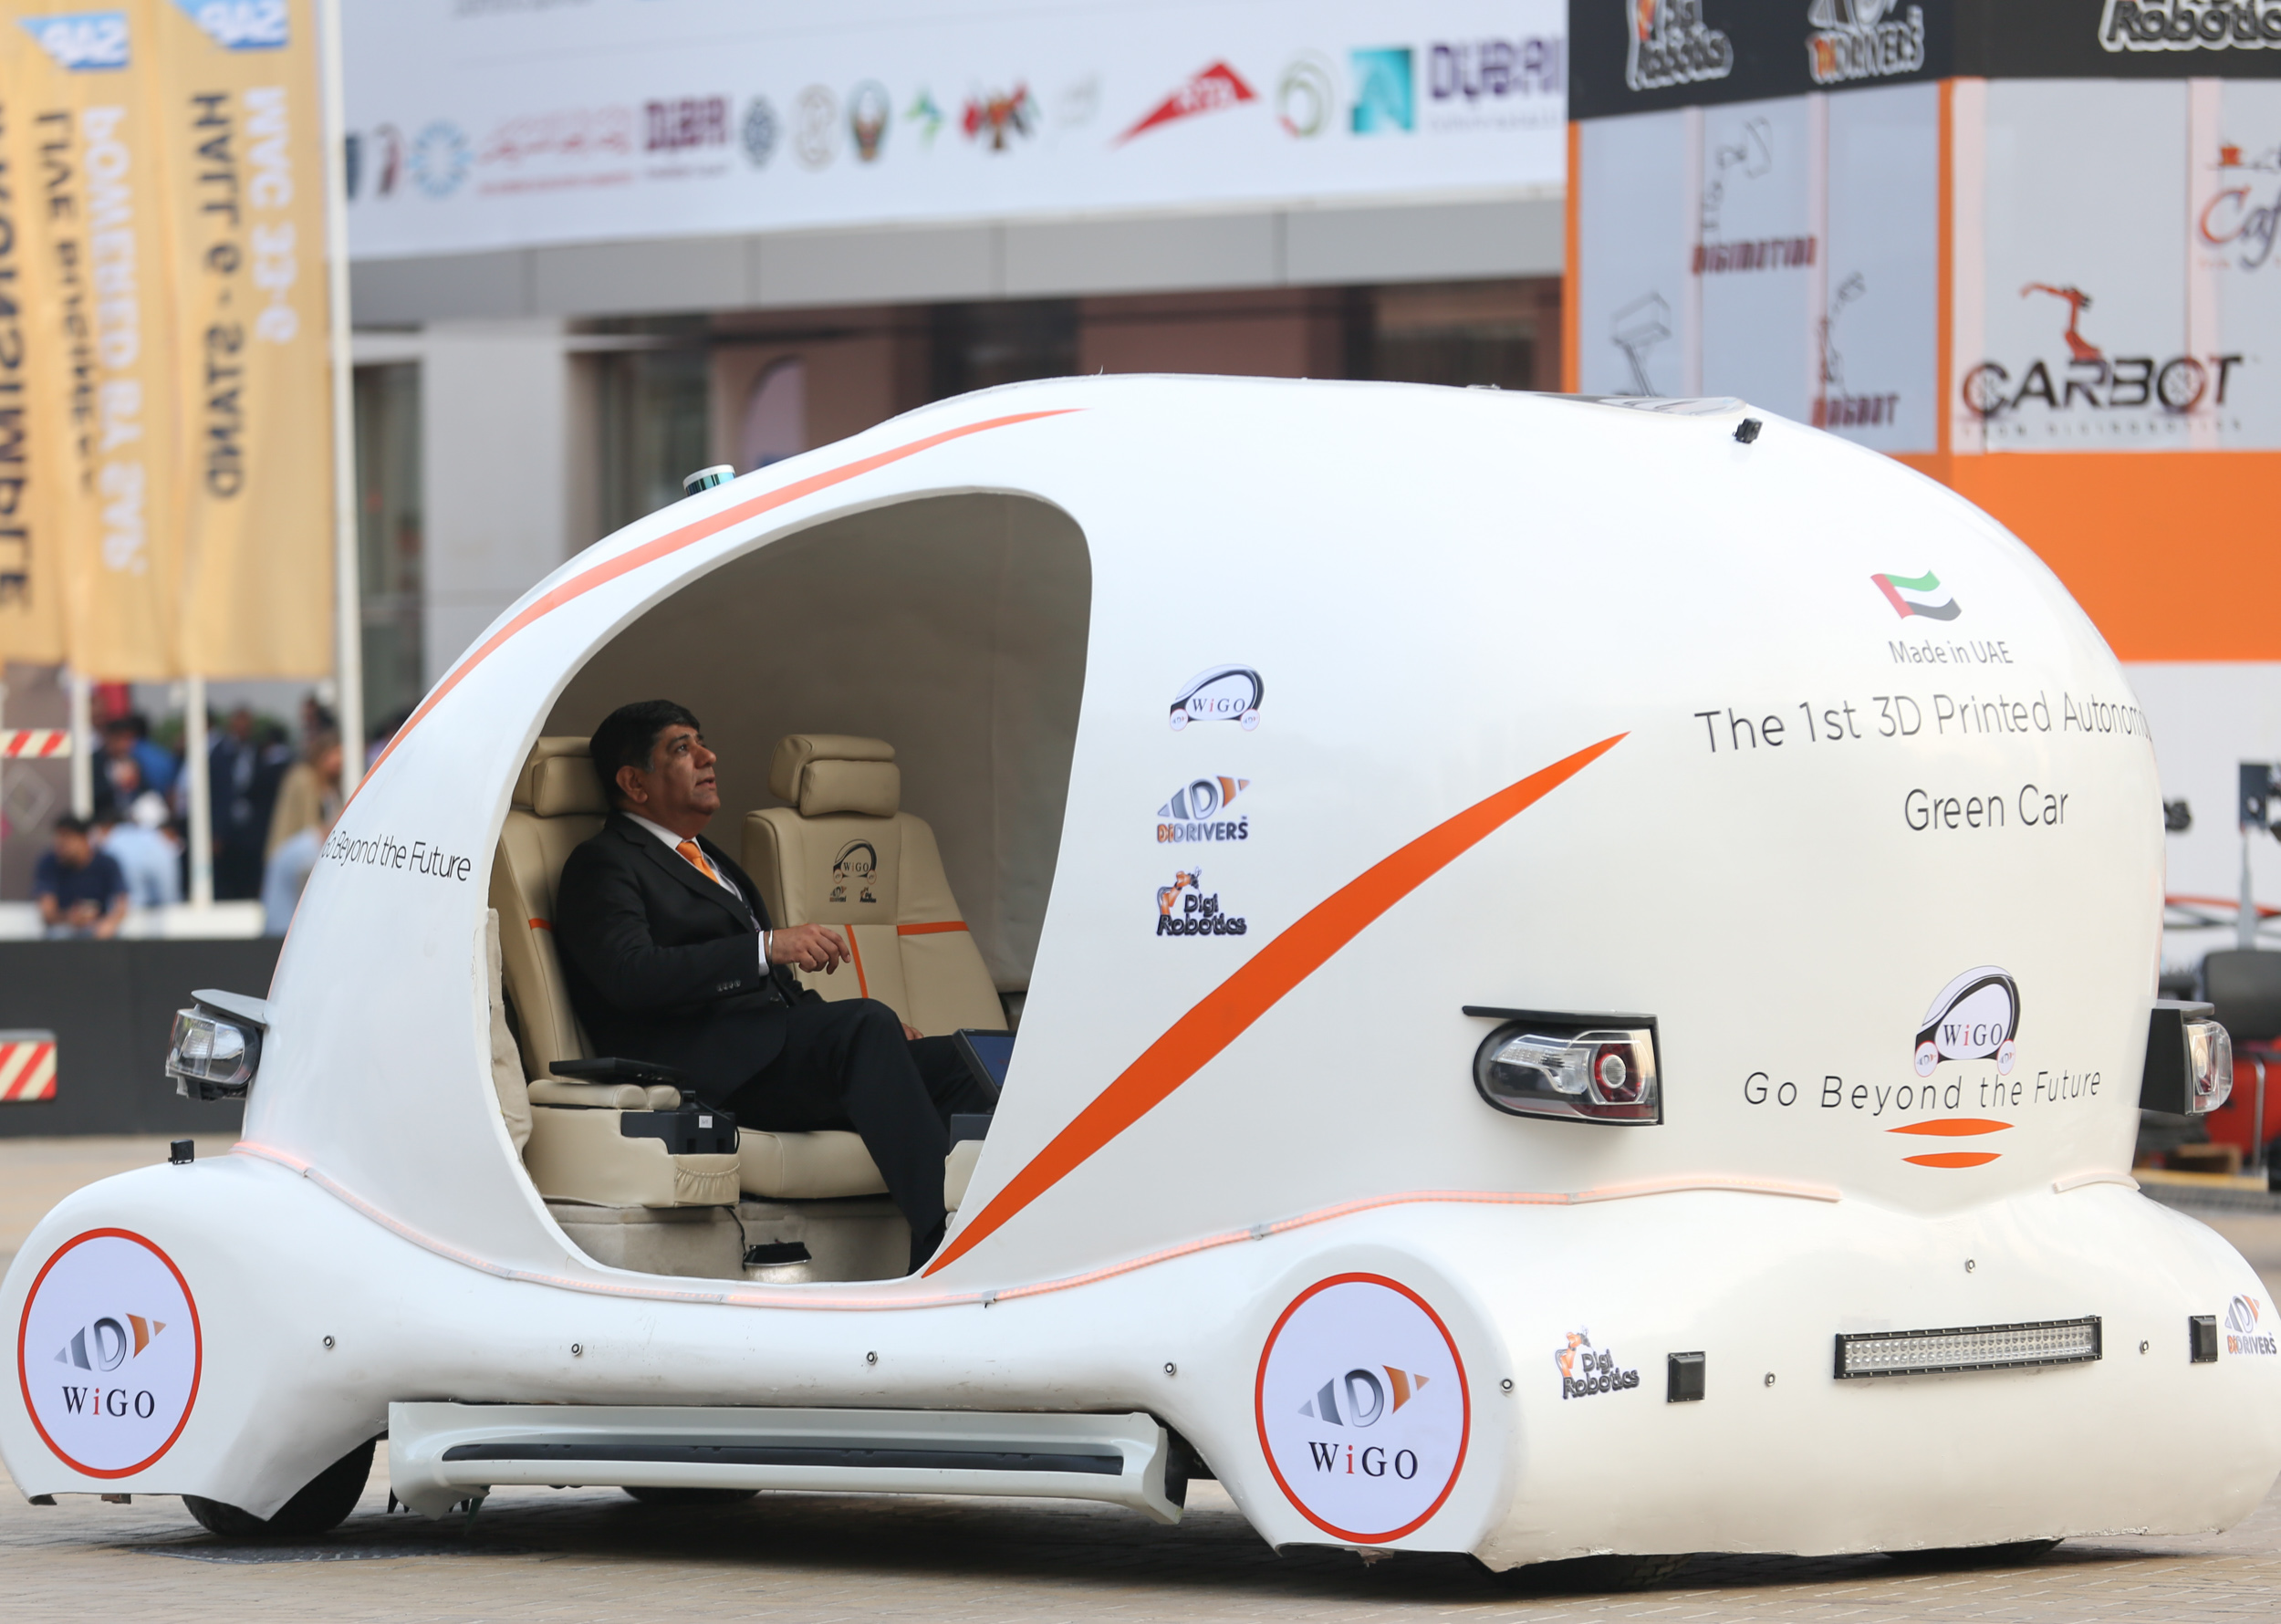 DigiRobotics Launches UAE's First 3D-Printed Car at GITEX